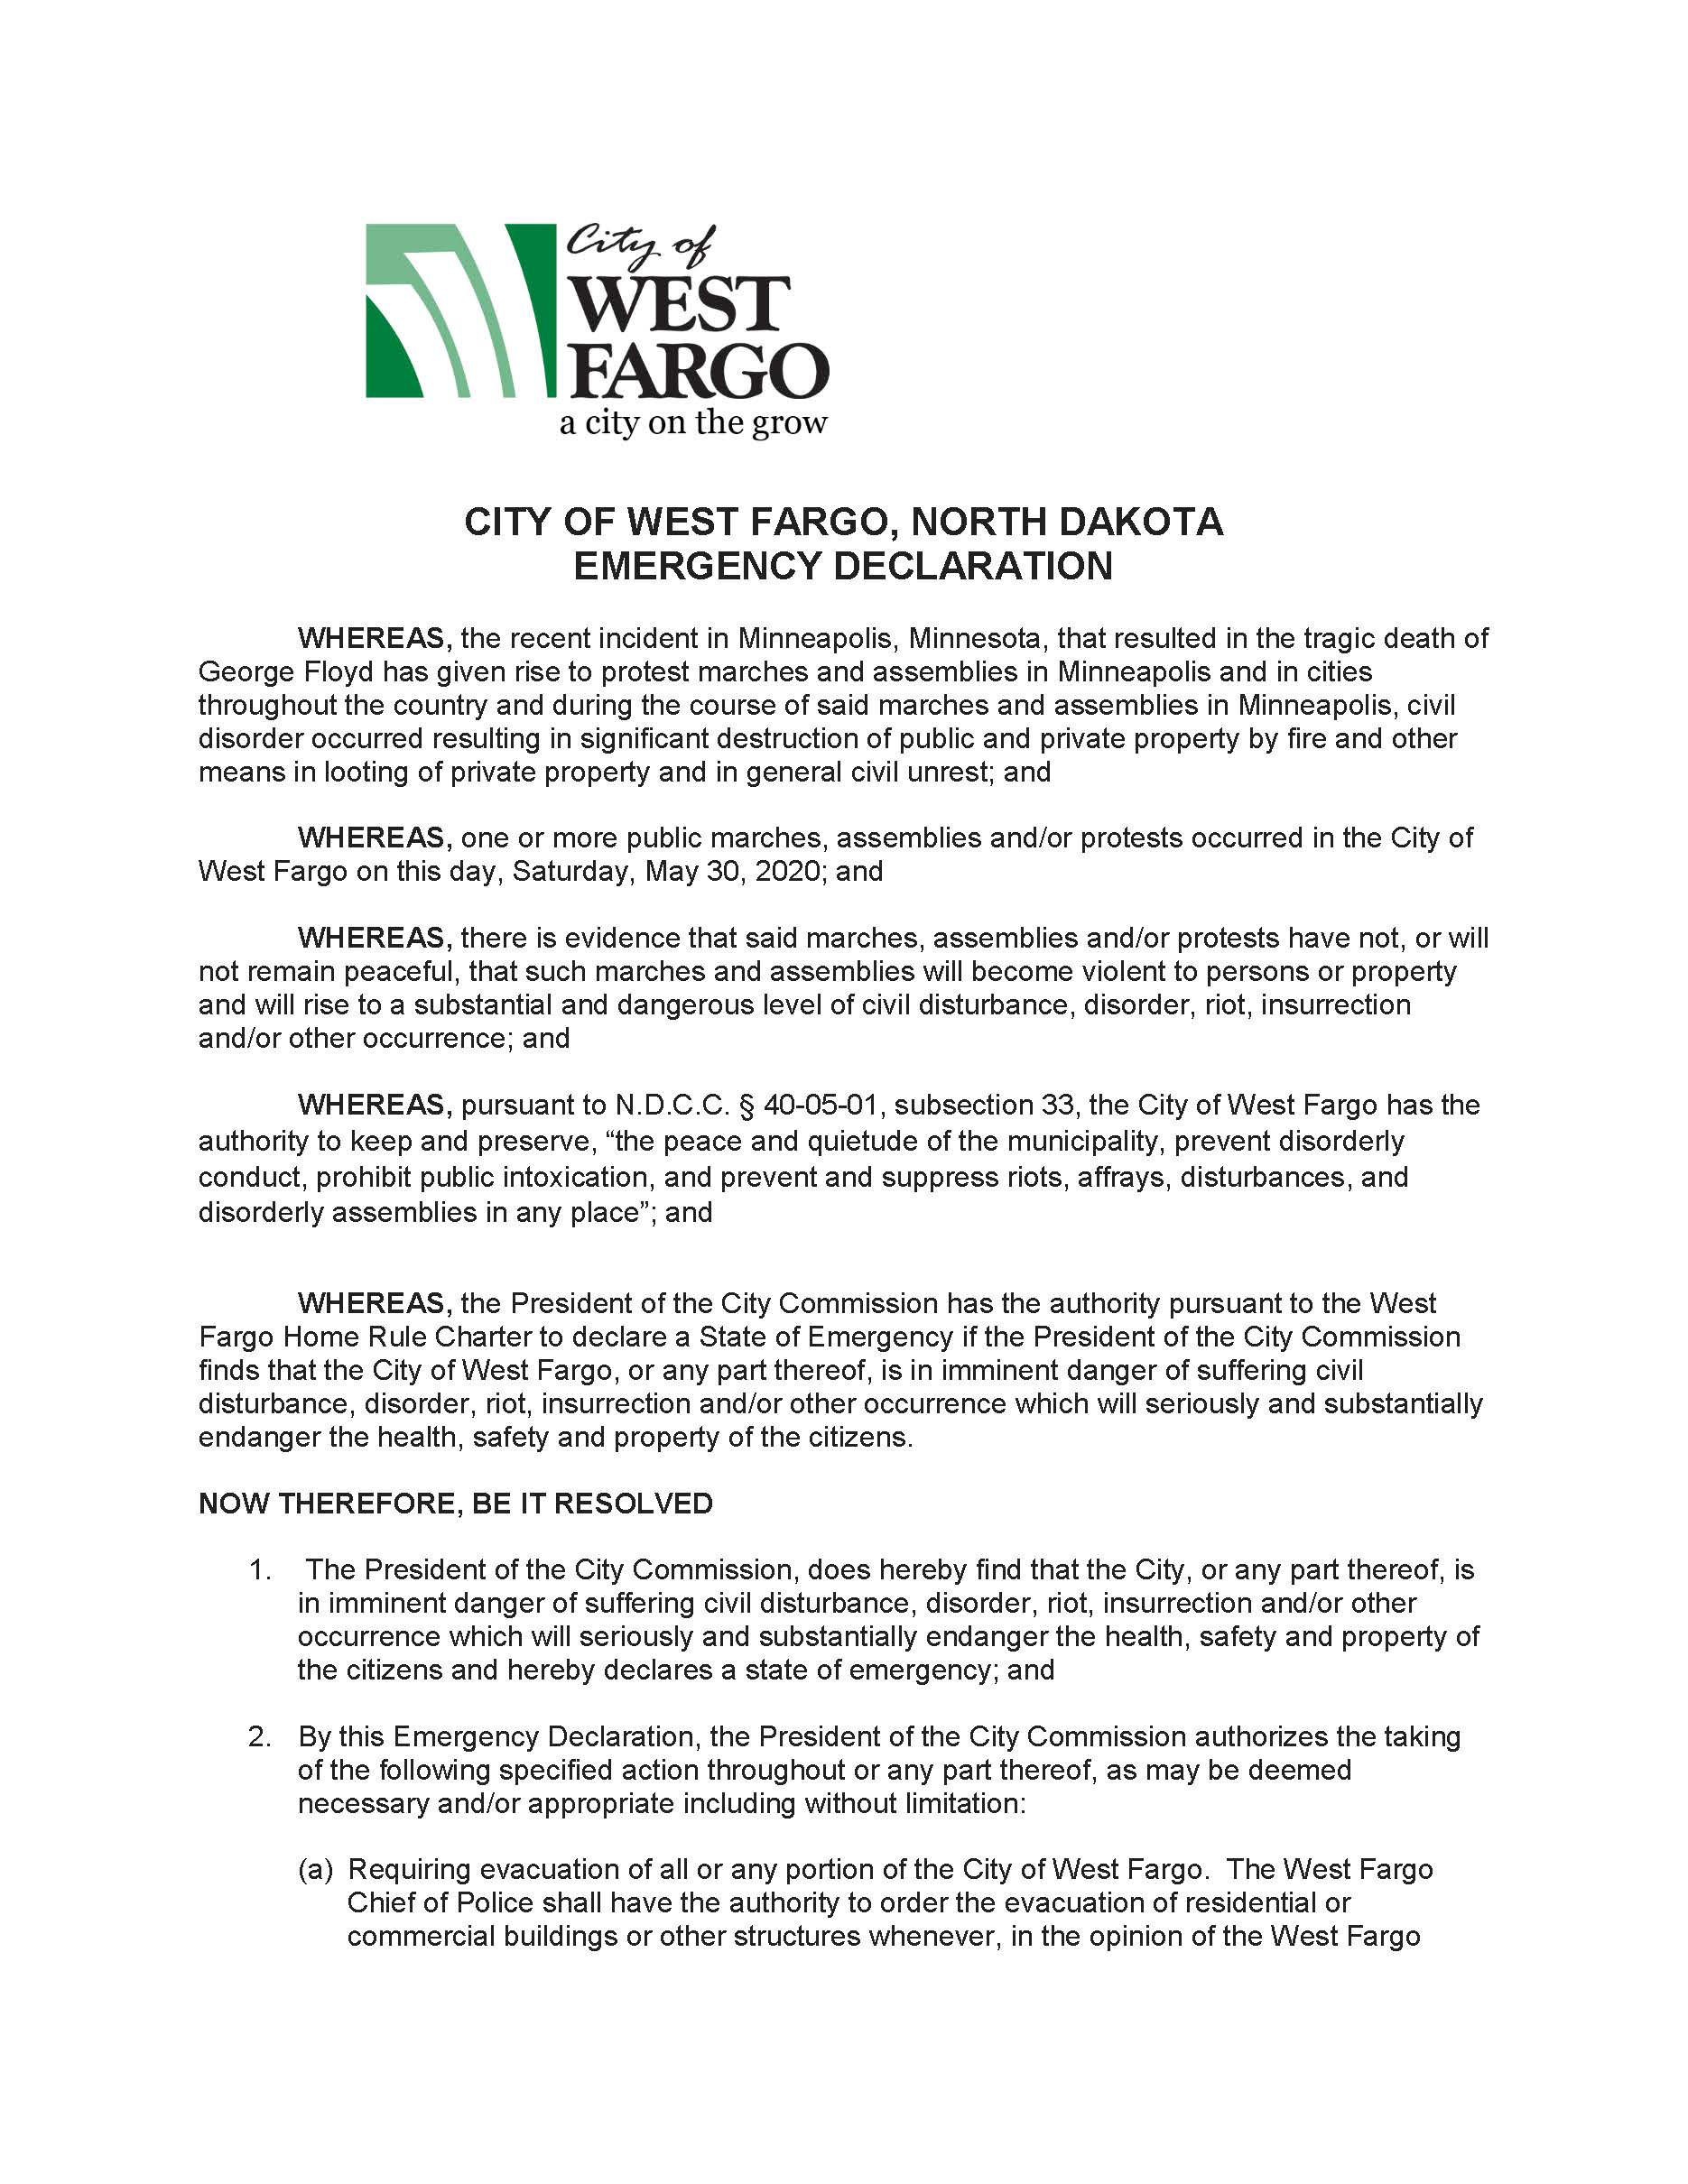 cowf emergency declaration_Page_1